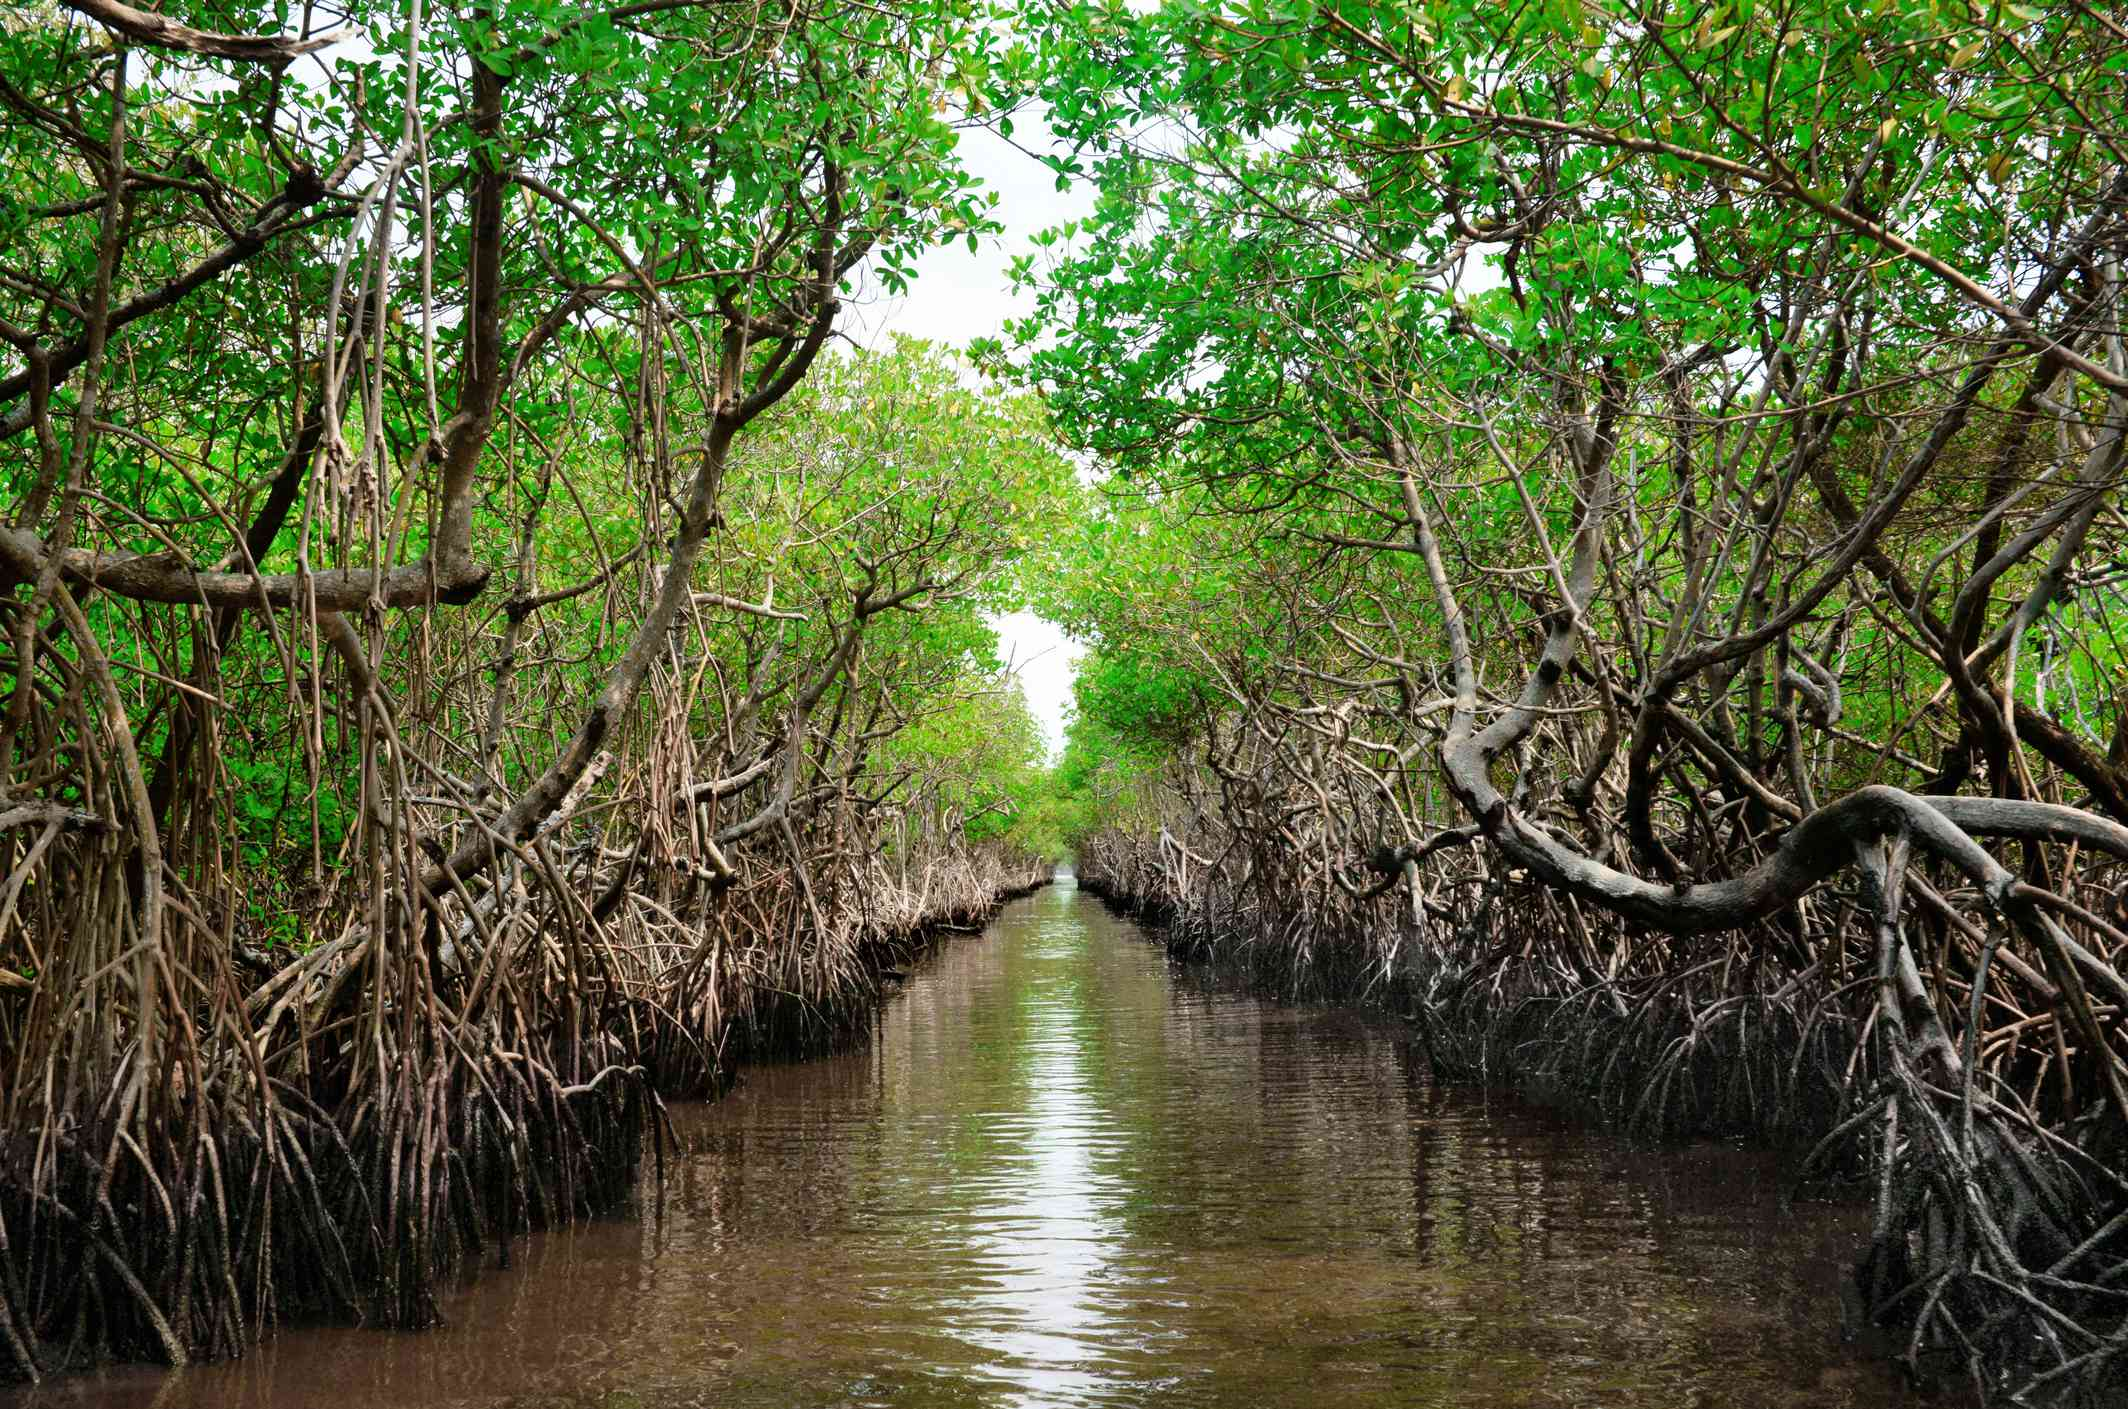 Mangroves growing along a waterway in Everglades National Park